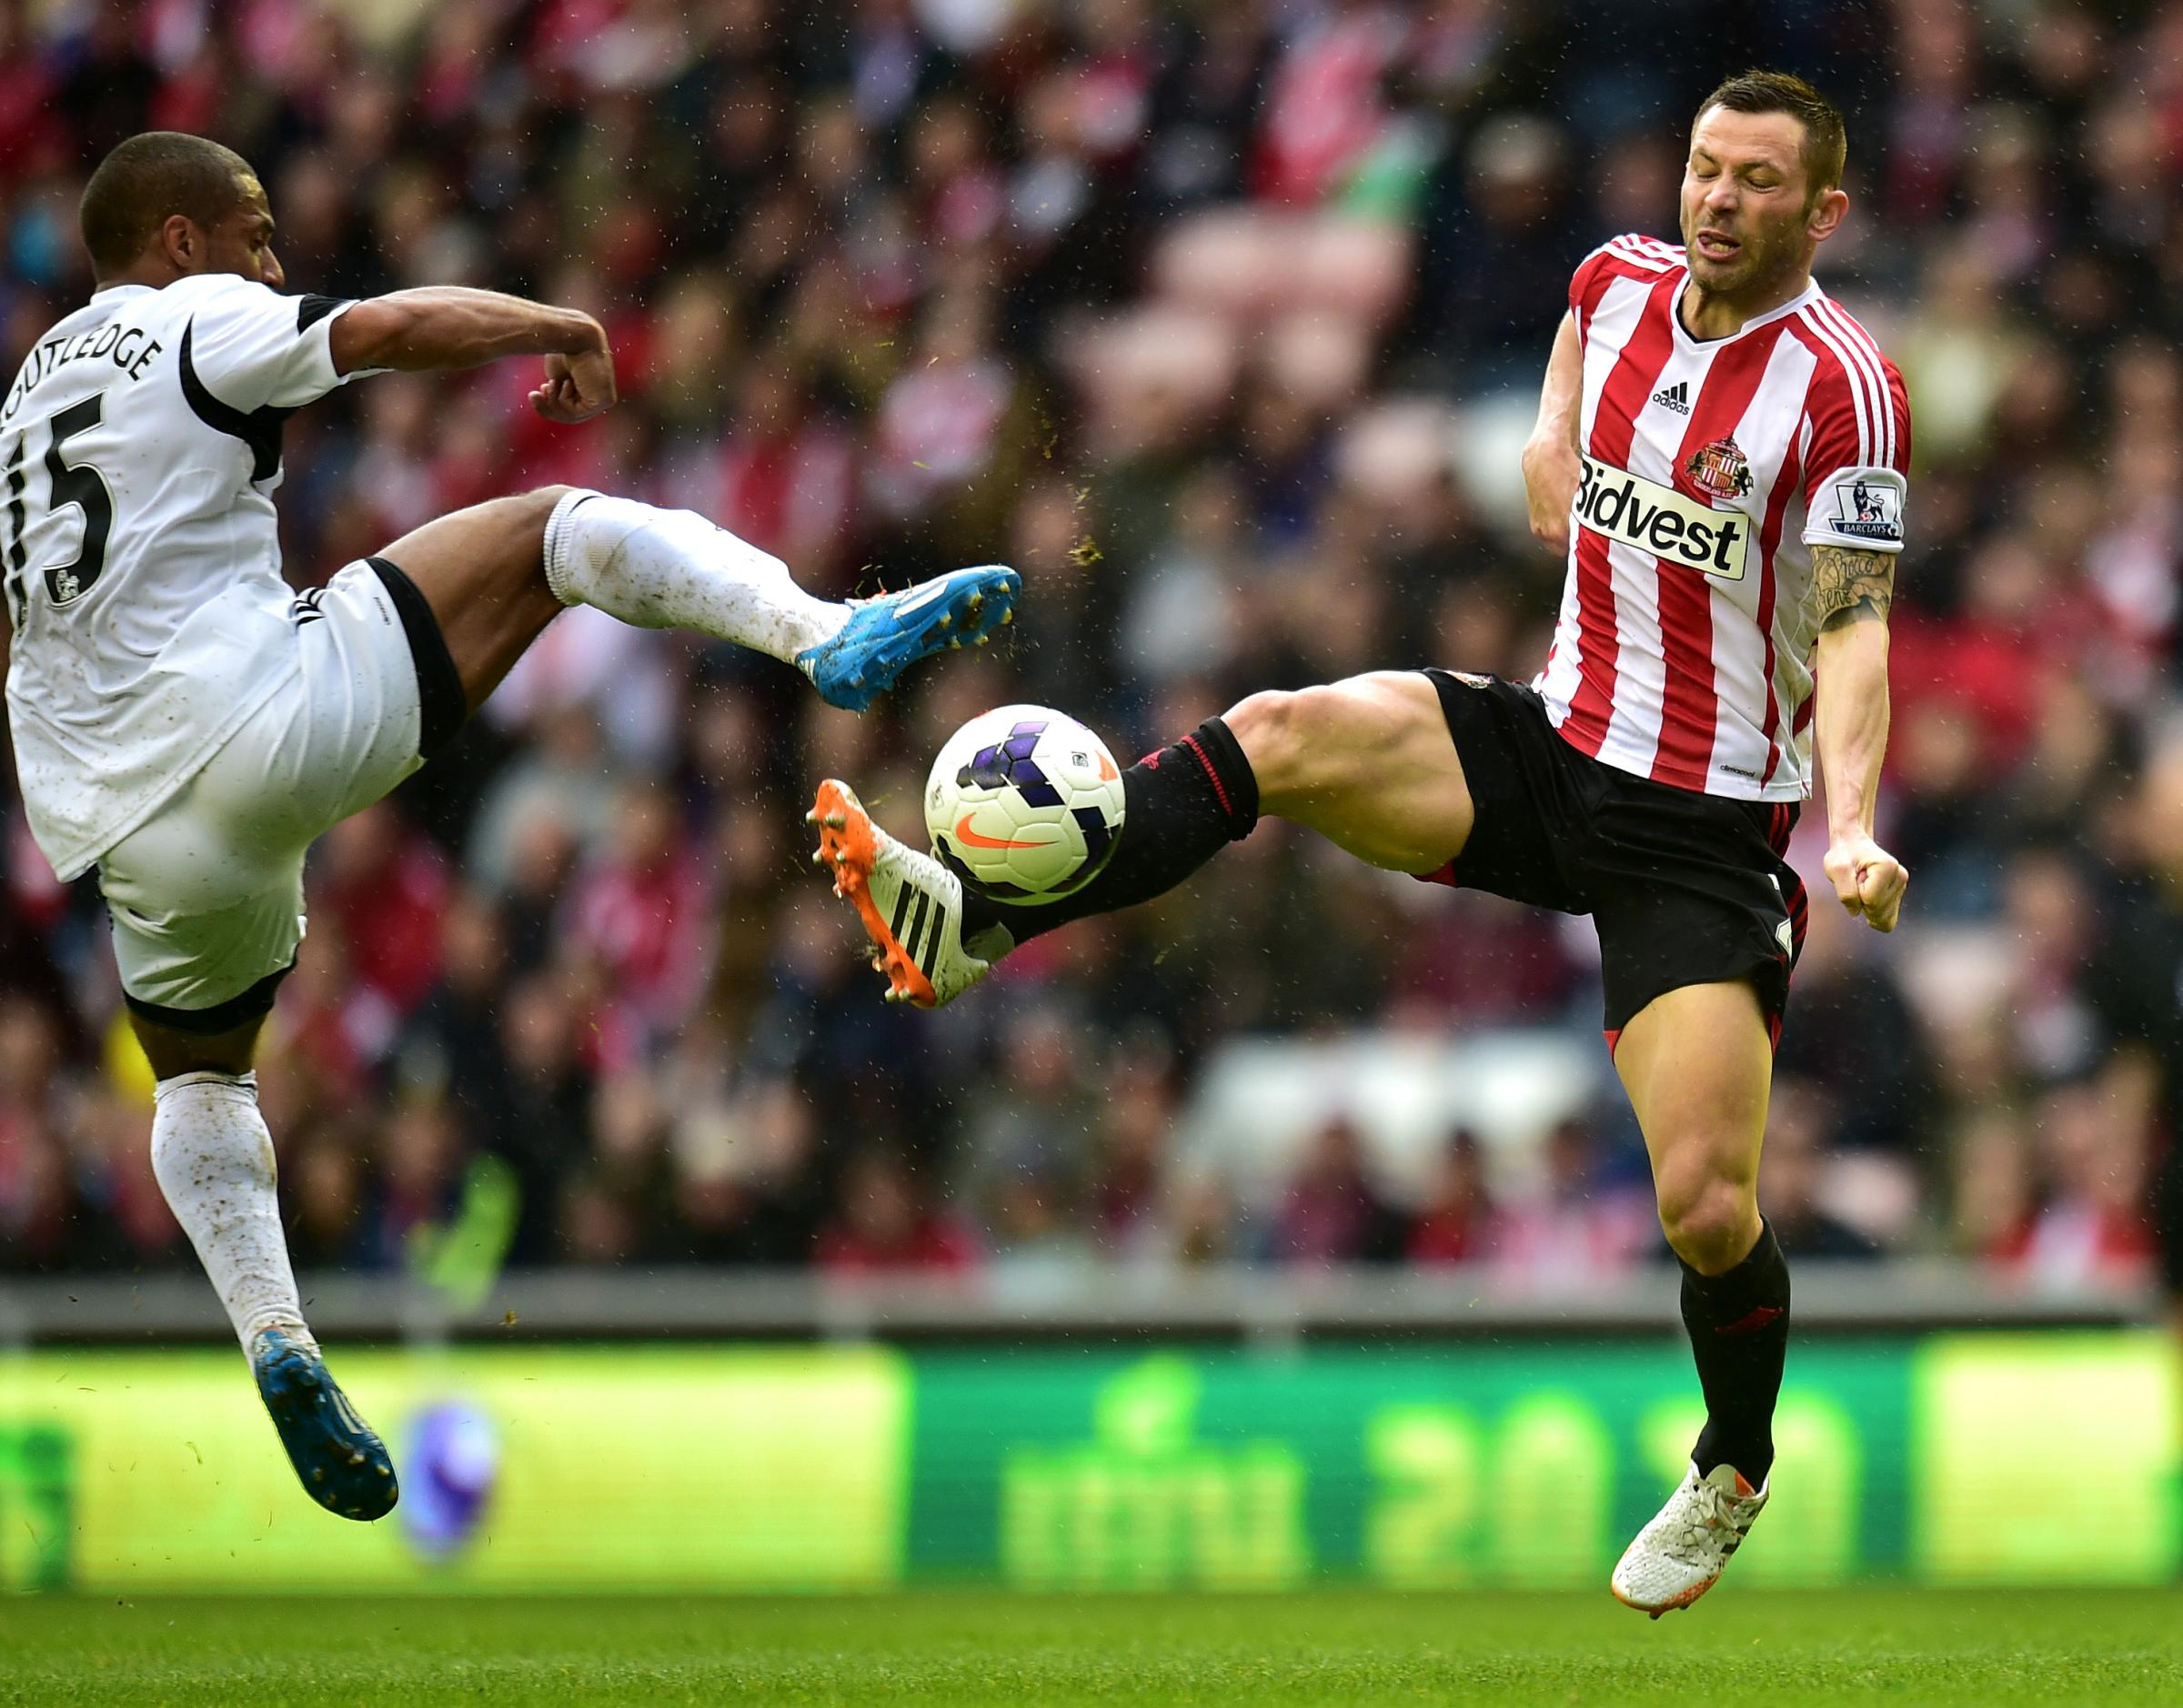 Match Analysis: Sunderland 1 Swansea Ci